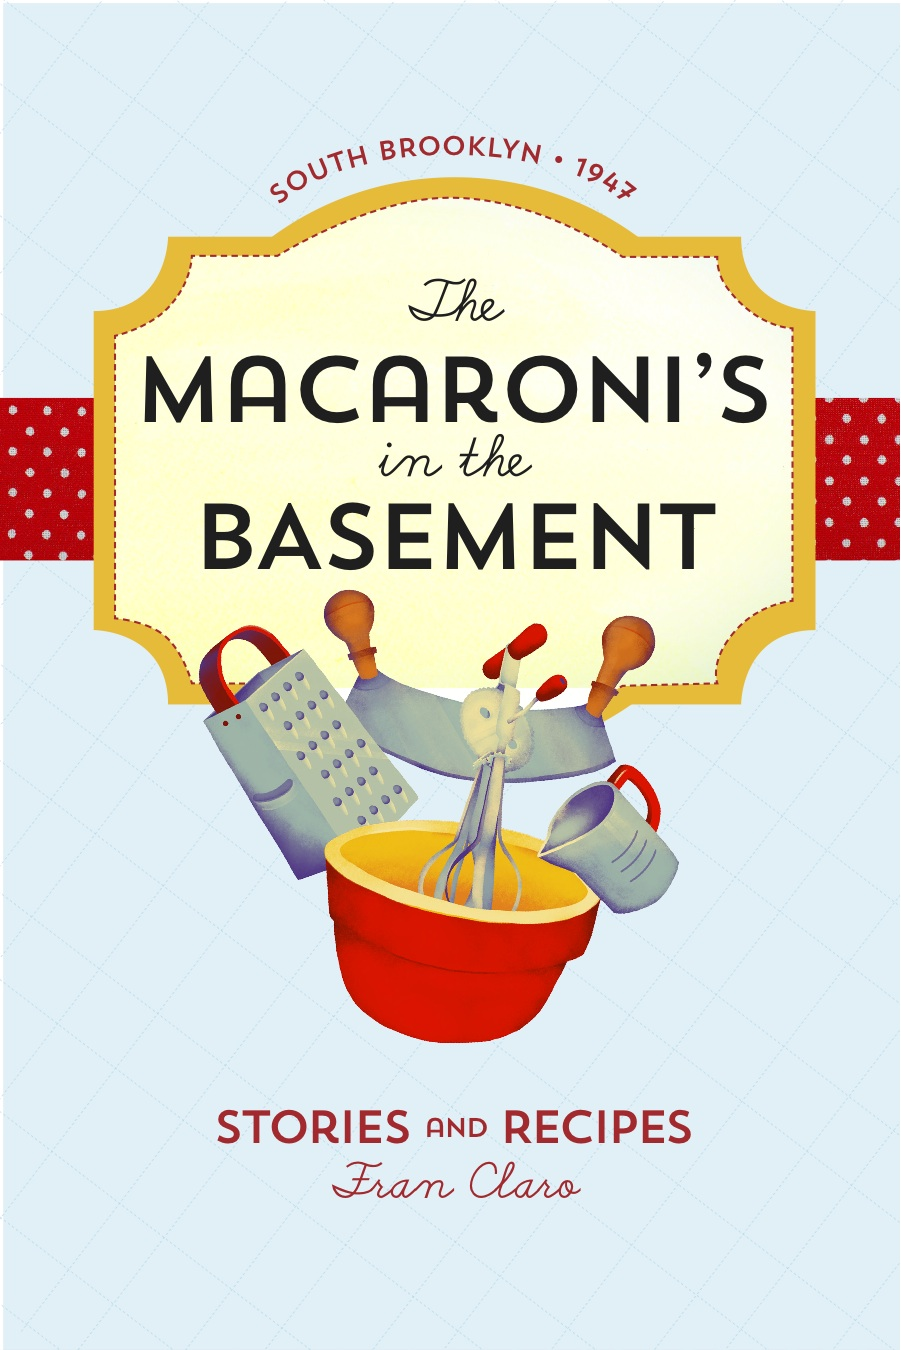 The Macaroni's in the Basement